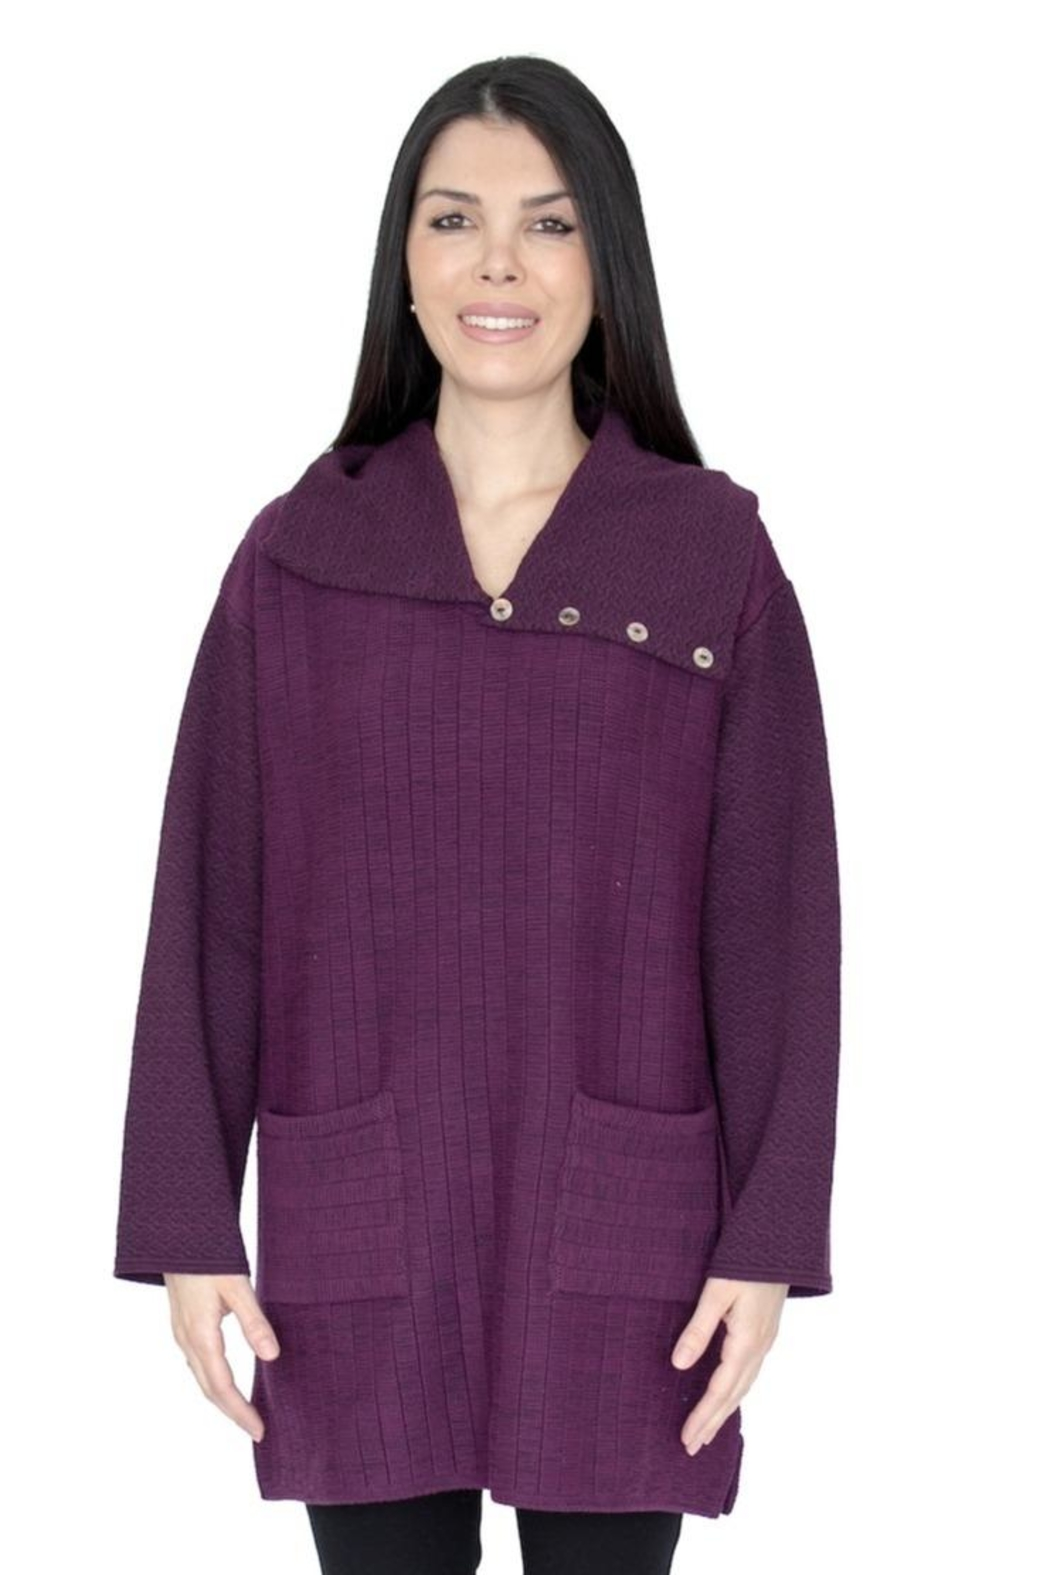 Margaret Winters Cotton Burgundy Tunic - Main Image